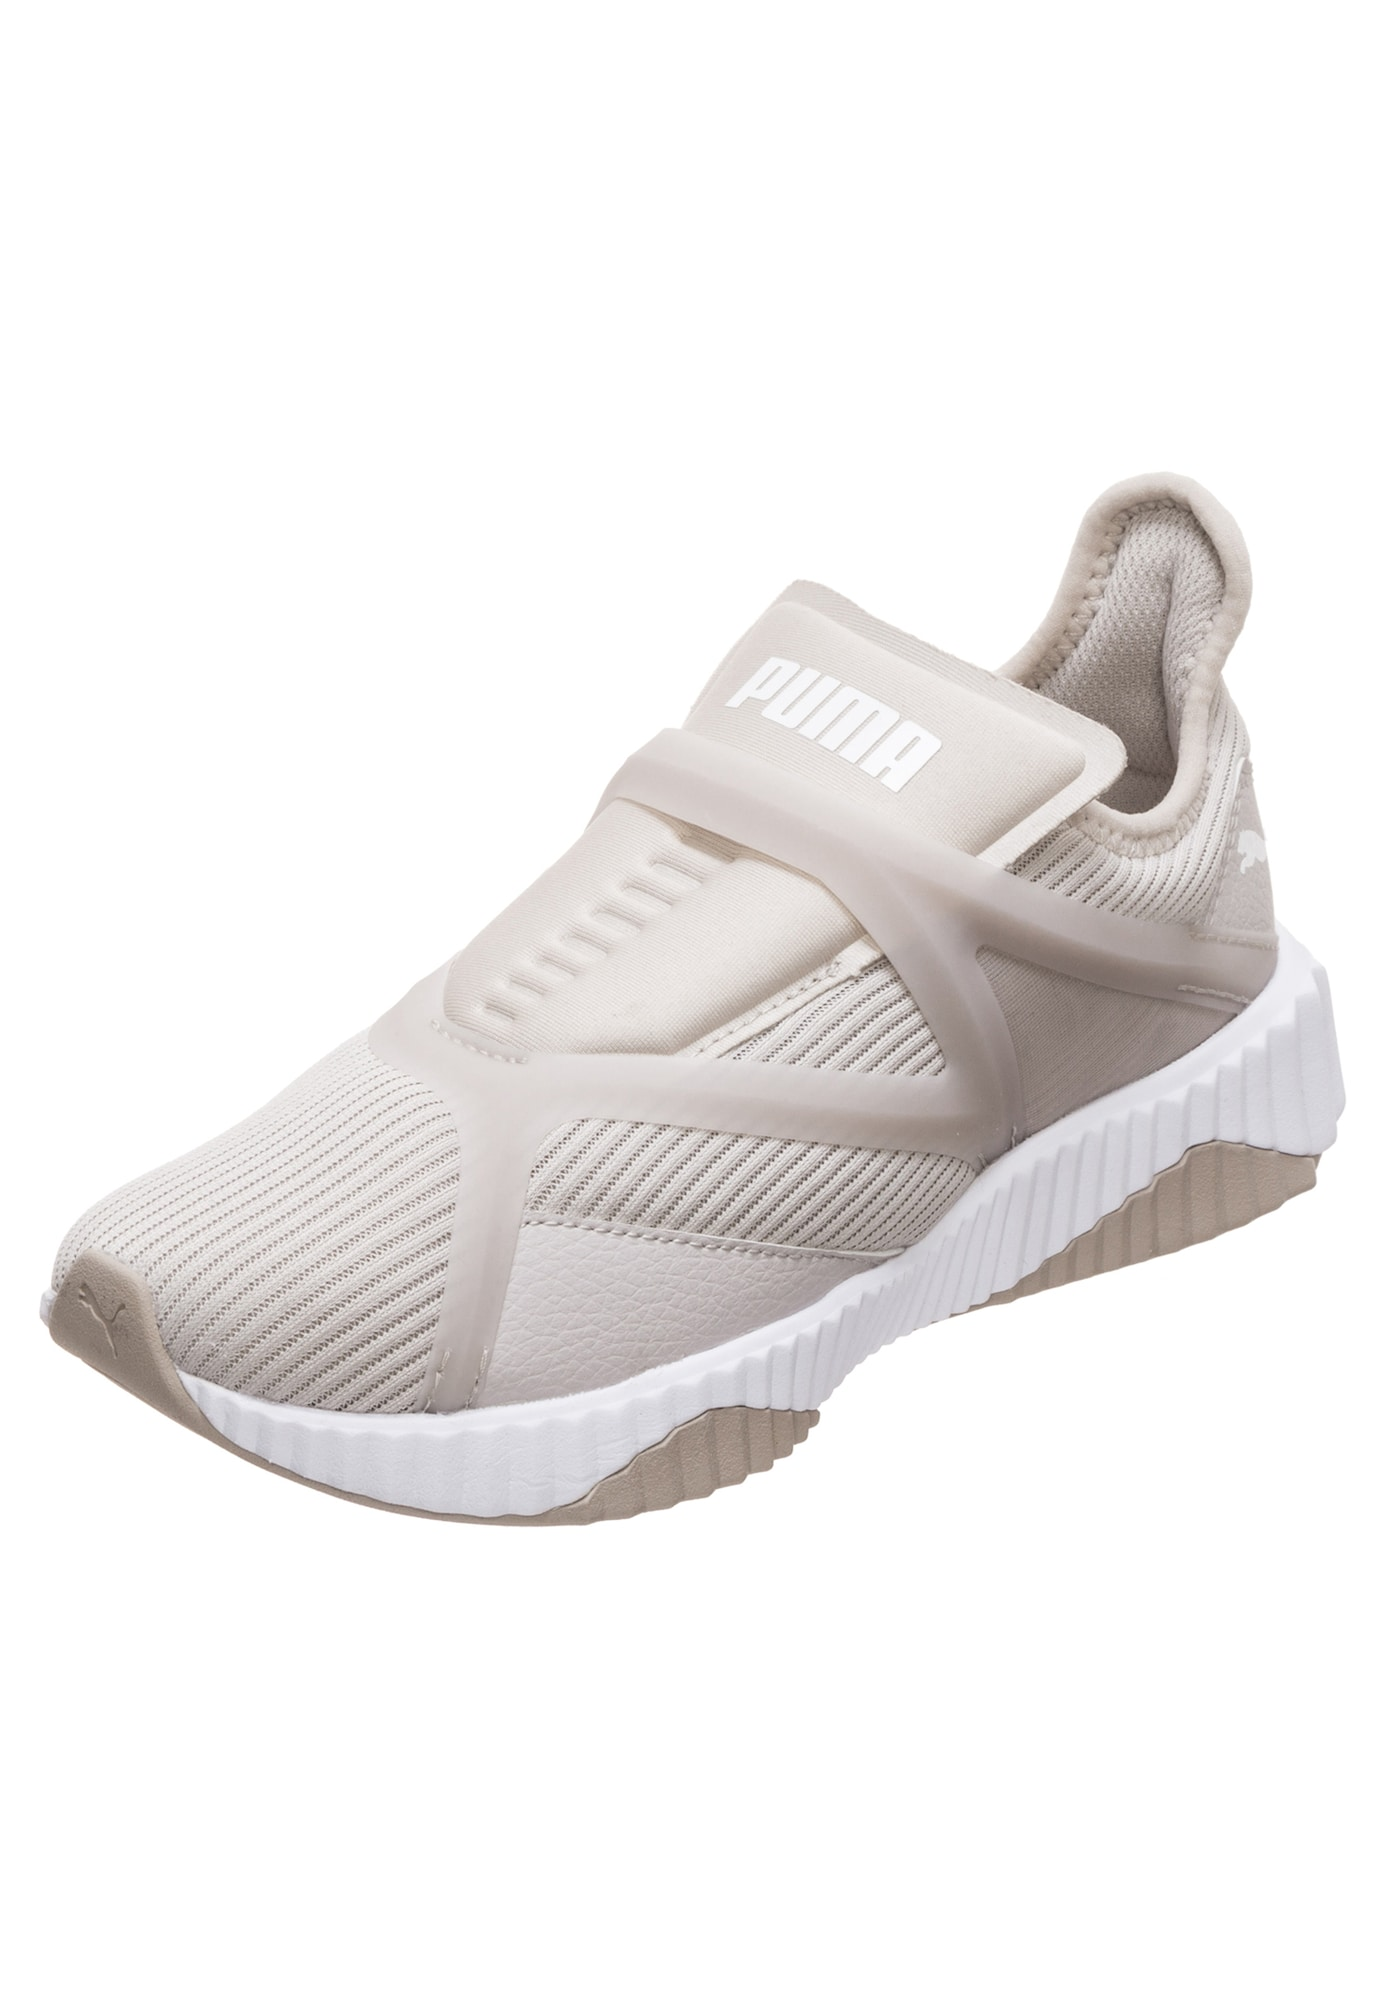 PUMA, Dames Sneakers laag 'Defy Cage', grijs / wit